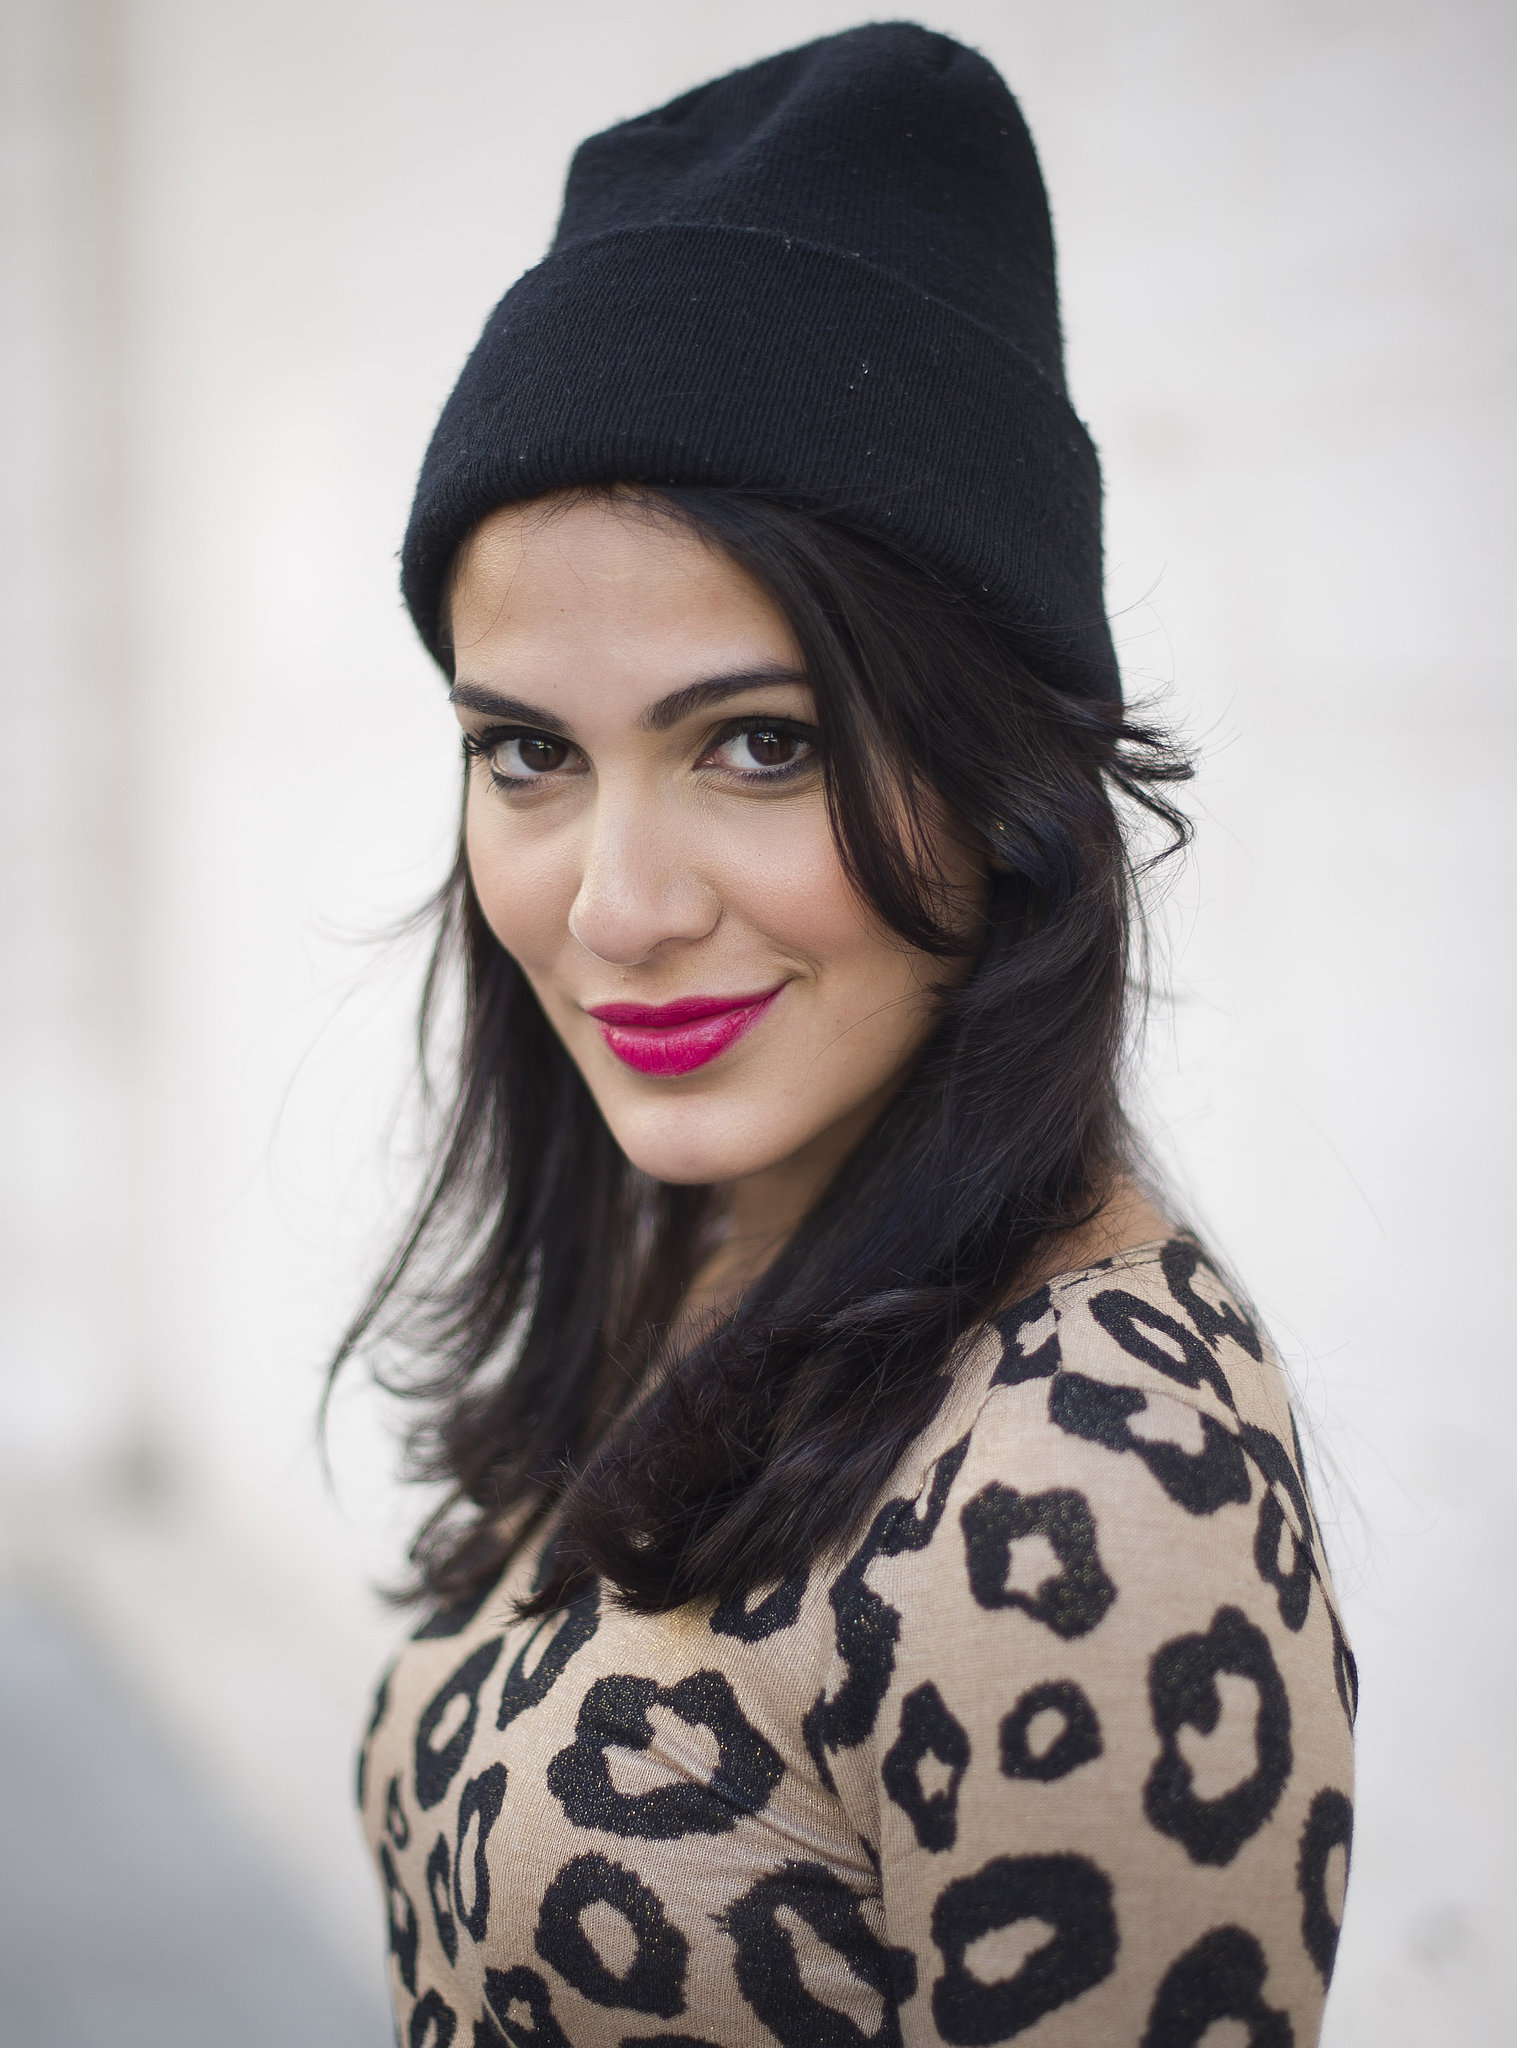 Fuchsia Lips A Beanie And A Leopard Print Top Combined